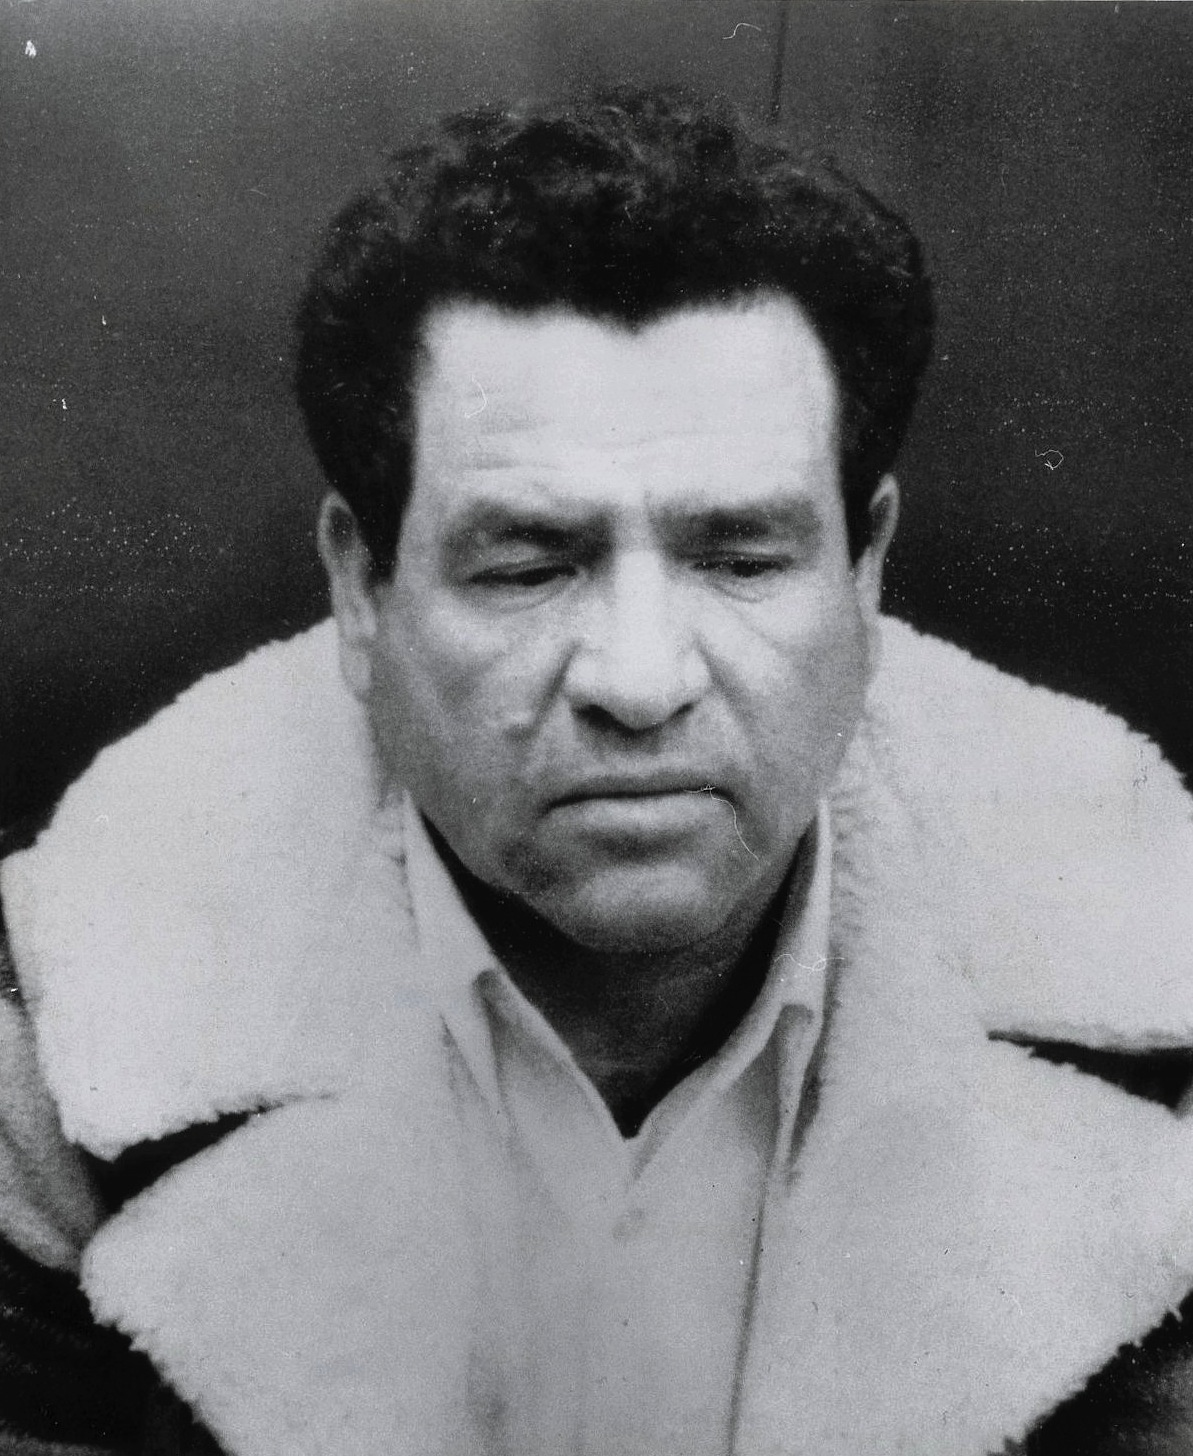 Margarito Flores SR., father of Margarito Jr. and Pedro Flores